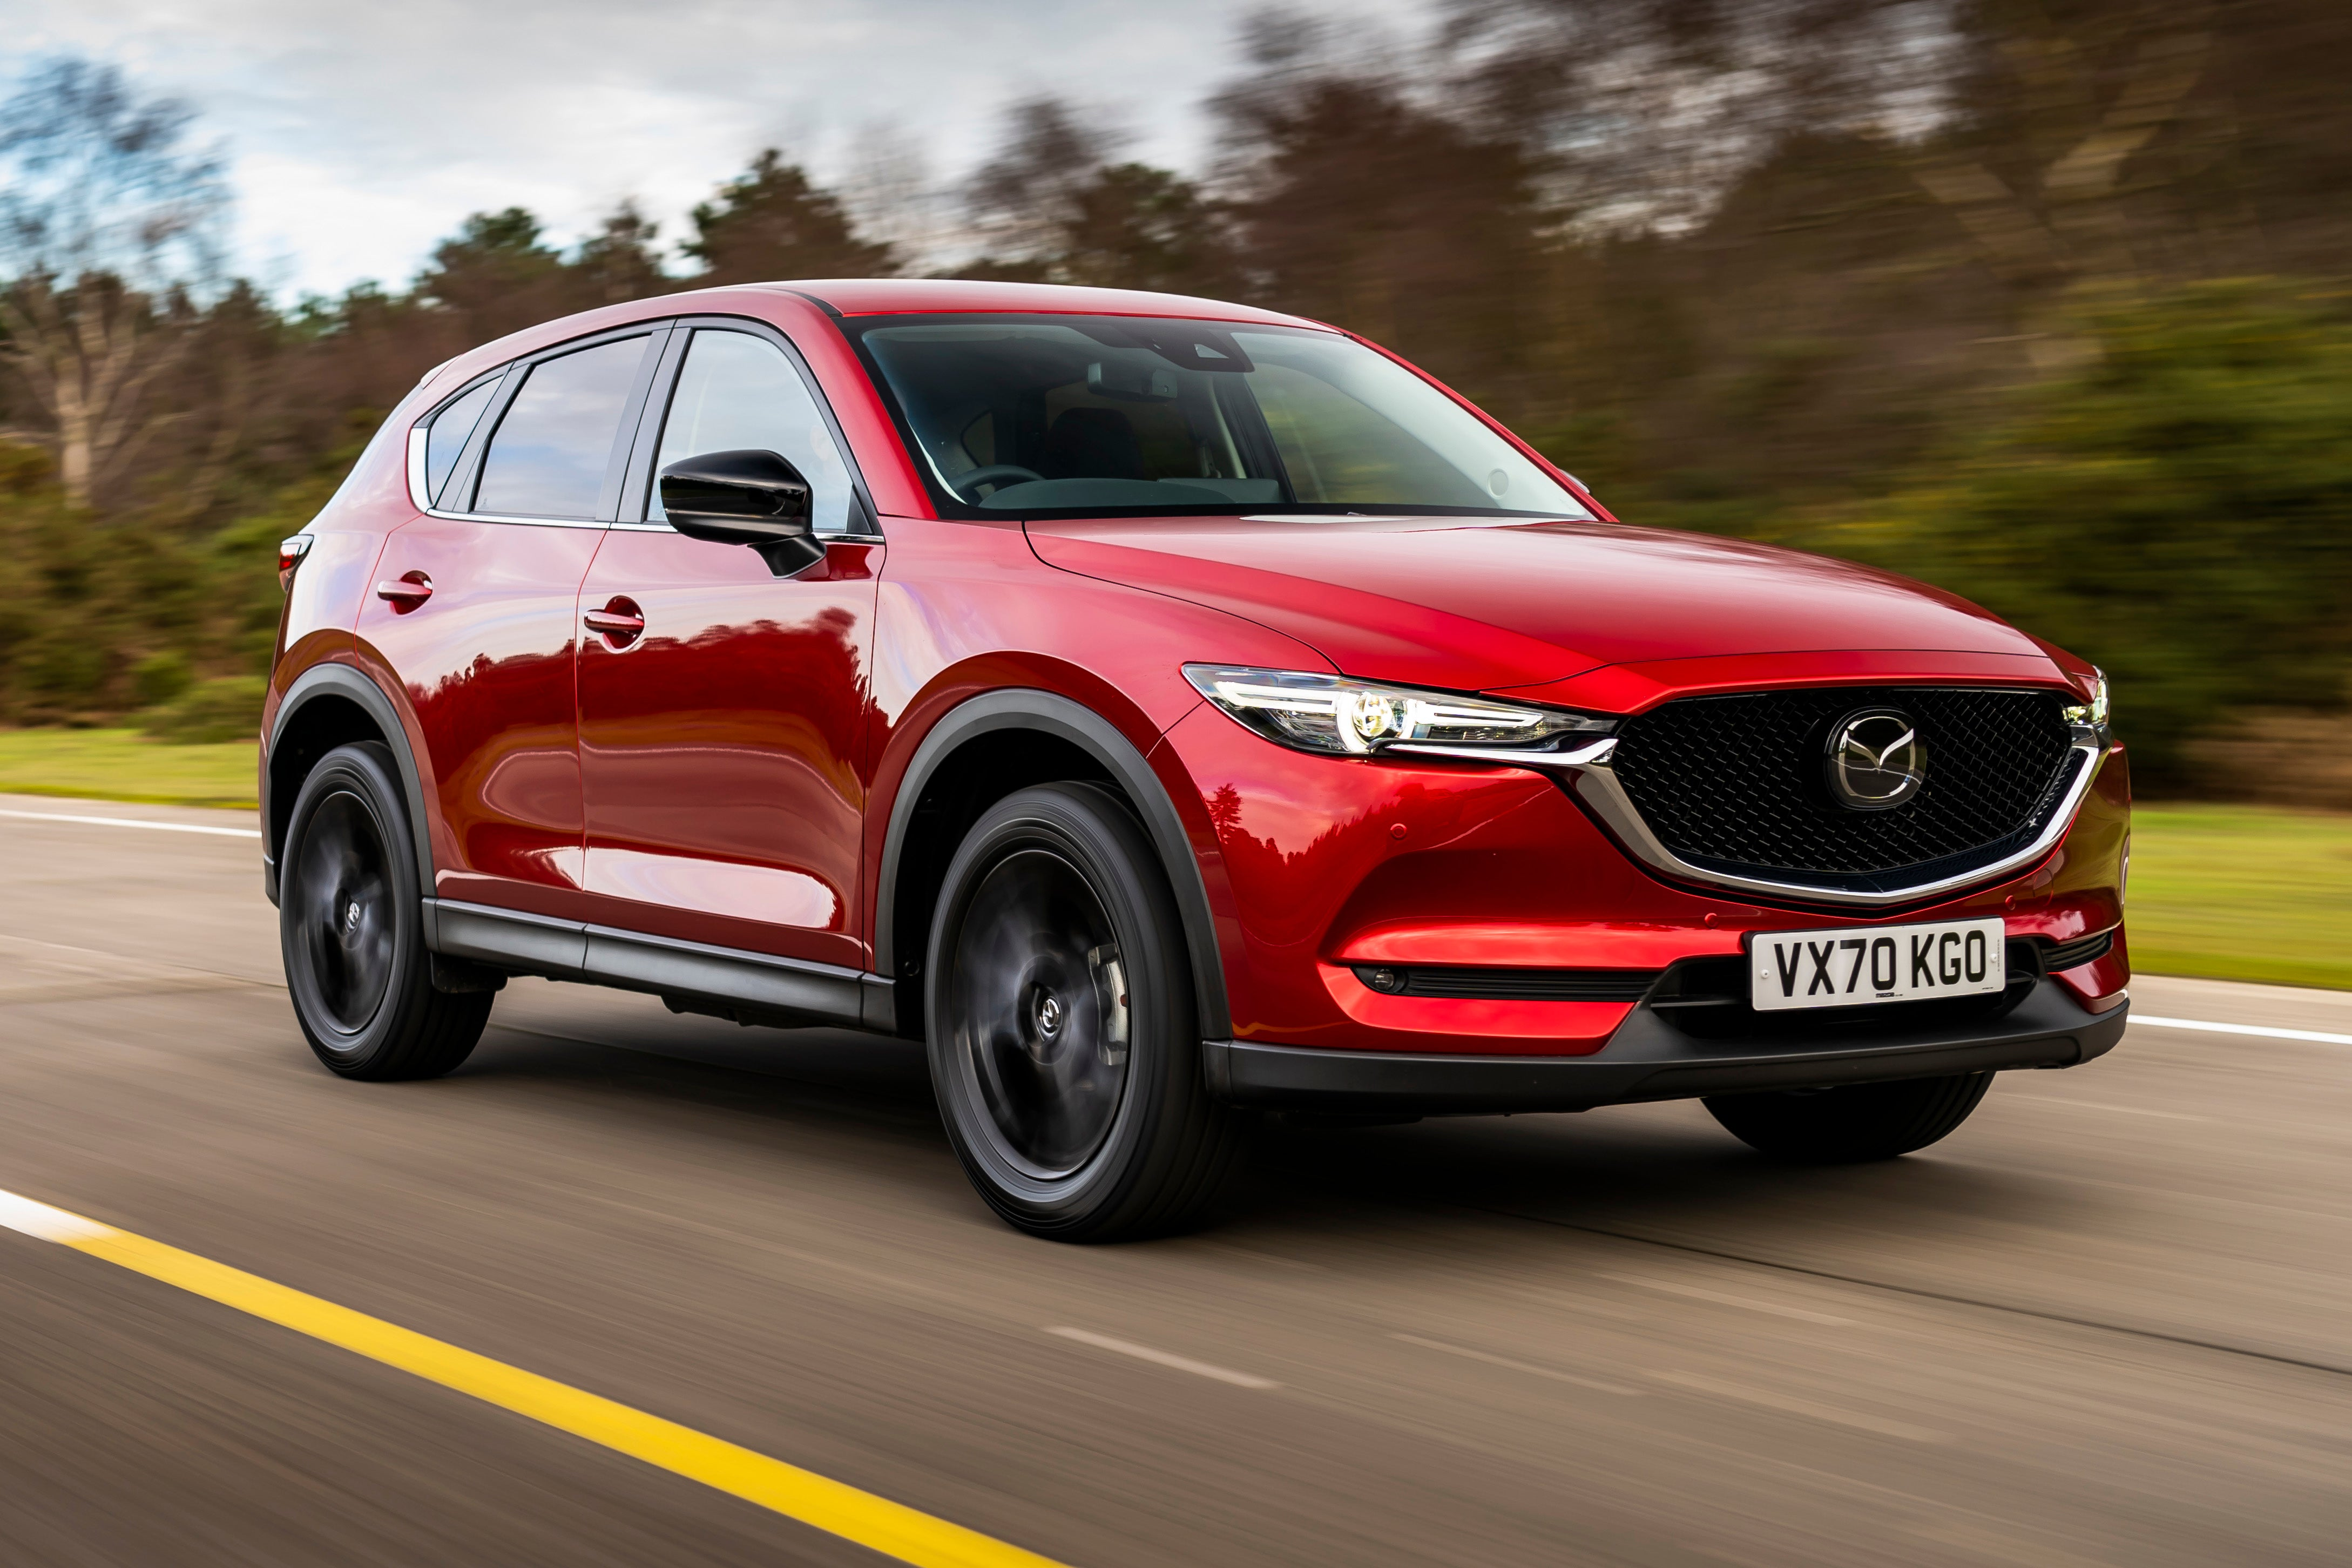 Mazda CX-5 on road driving